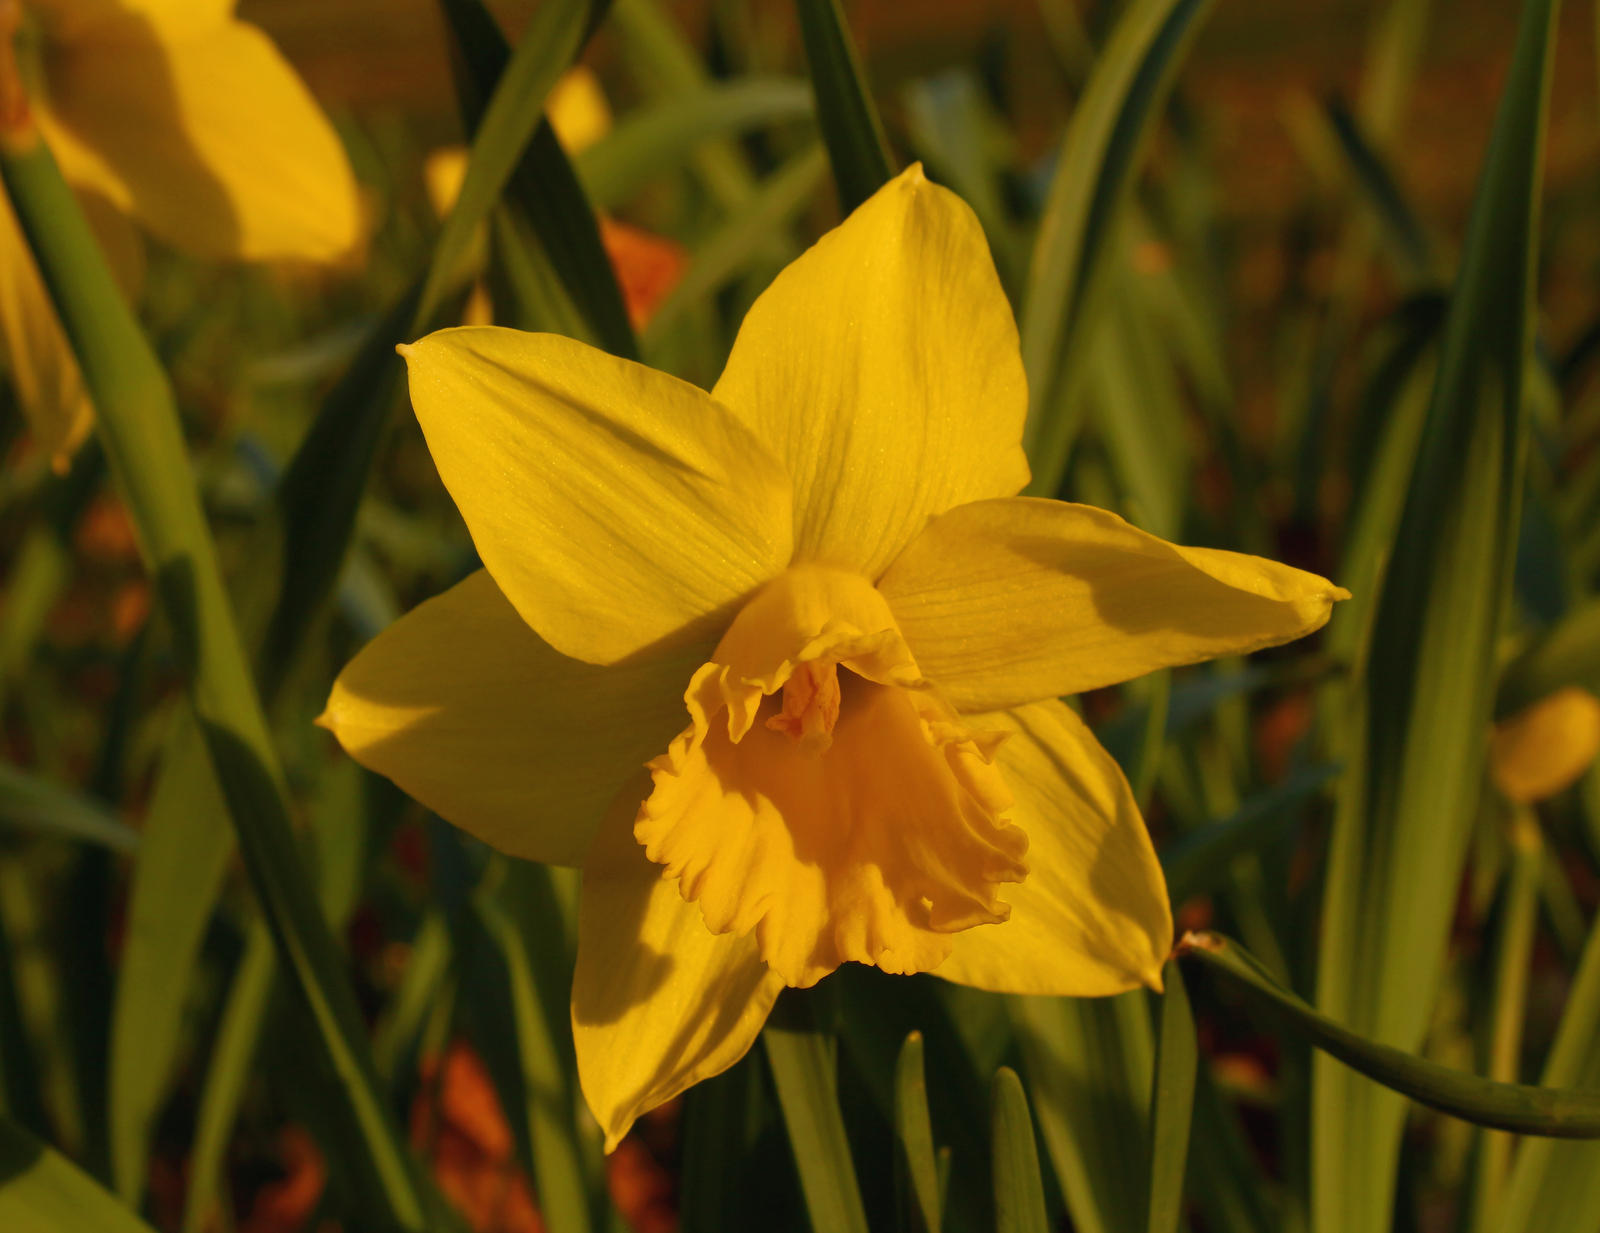 Narcissus in sunset by LoveForDetails